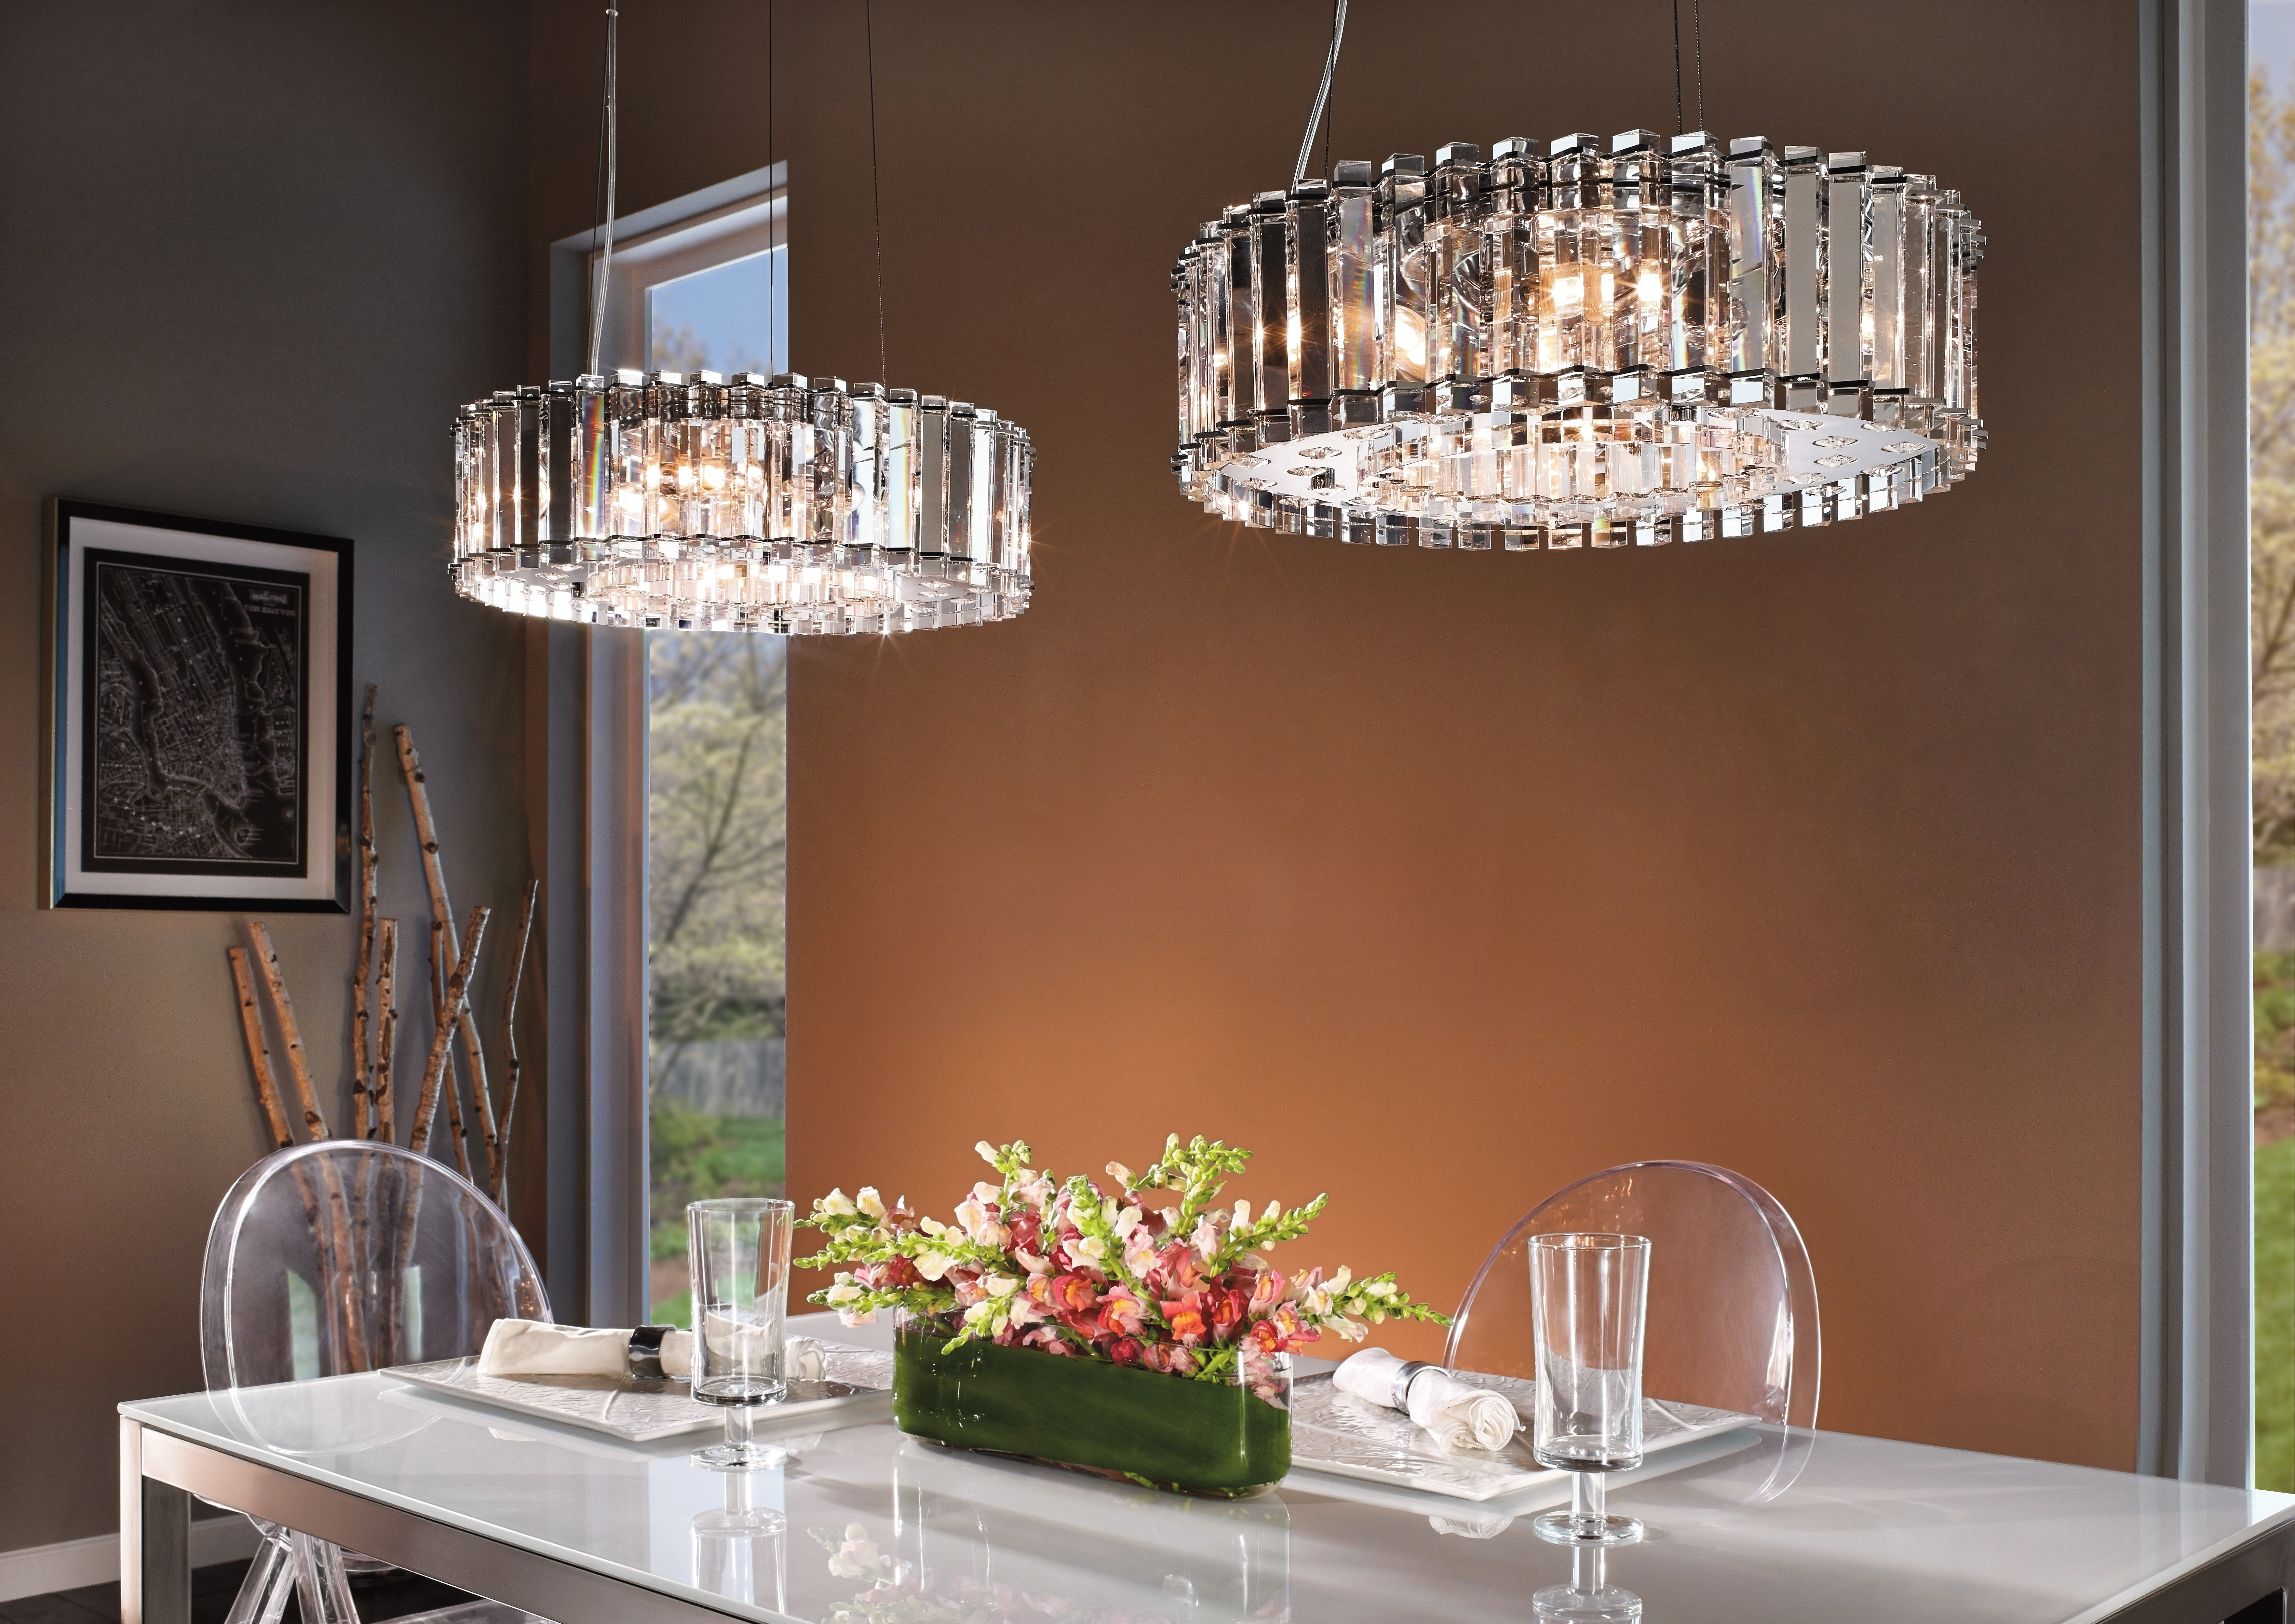 Newest Wall Mounted Chandelier Lighting Throughout Fresh Finest Wall Mounted Chandelier Lighting Dhy139 # (View 10 of 20)